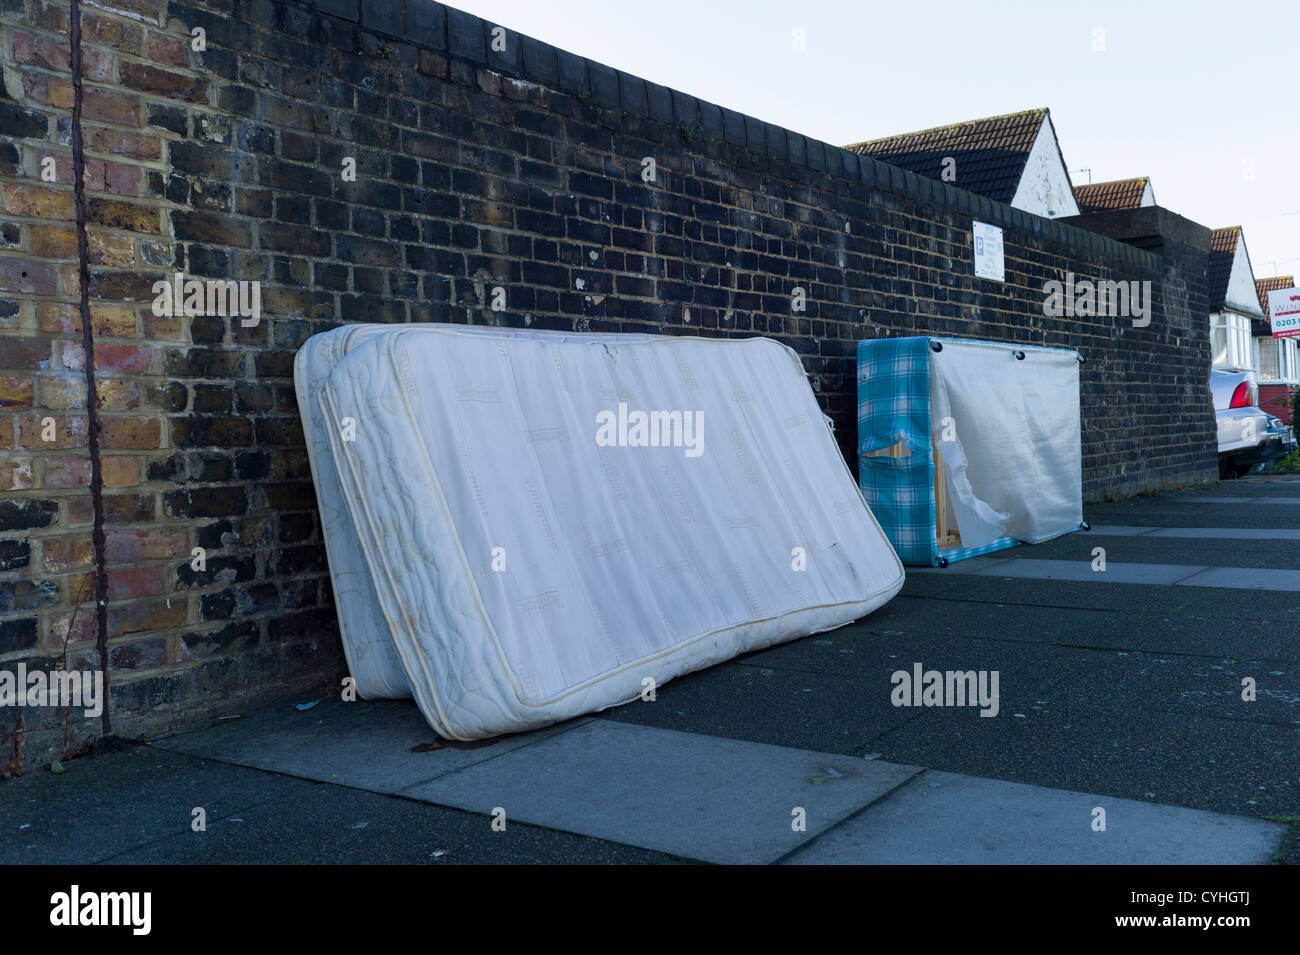 Fly tipping of old beds and mattresses on pavement in residential street in Brent Cross Golders Green, London - Stock Image